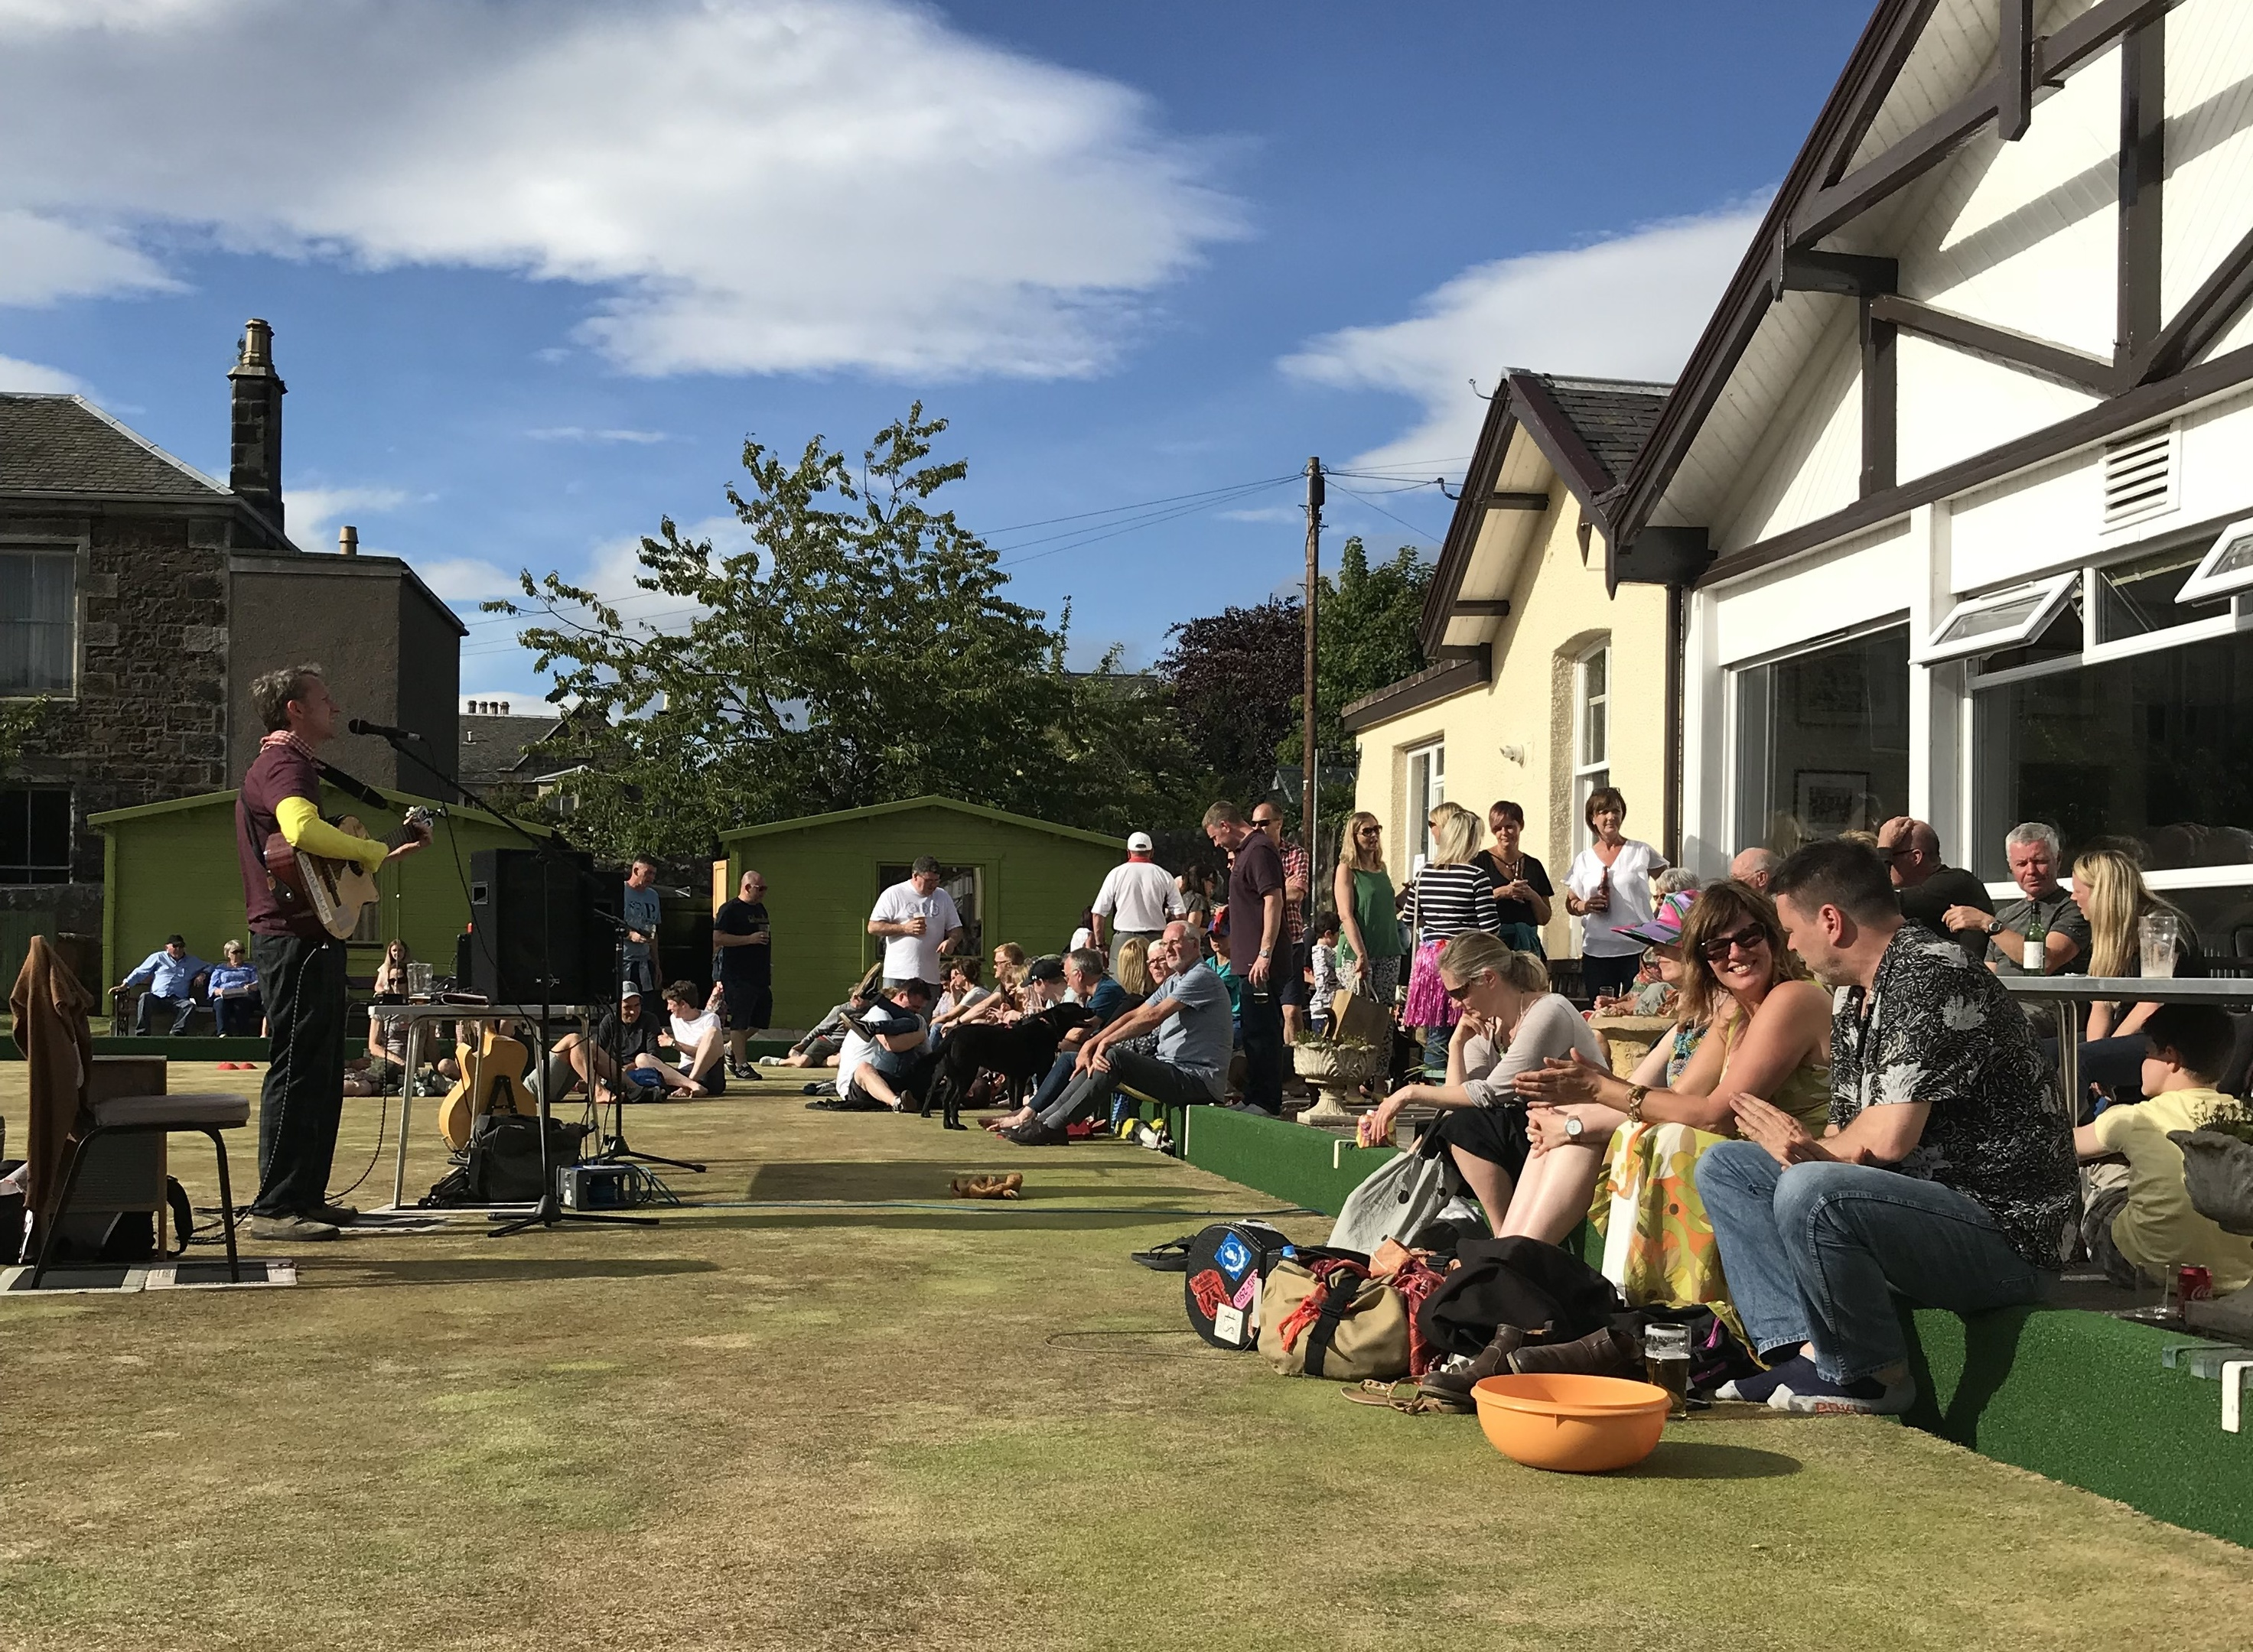 Revellers enjoy sunshine and song at the Newport Festival